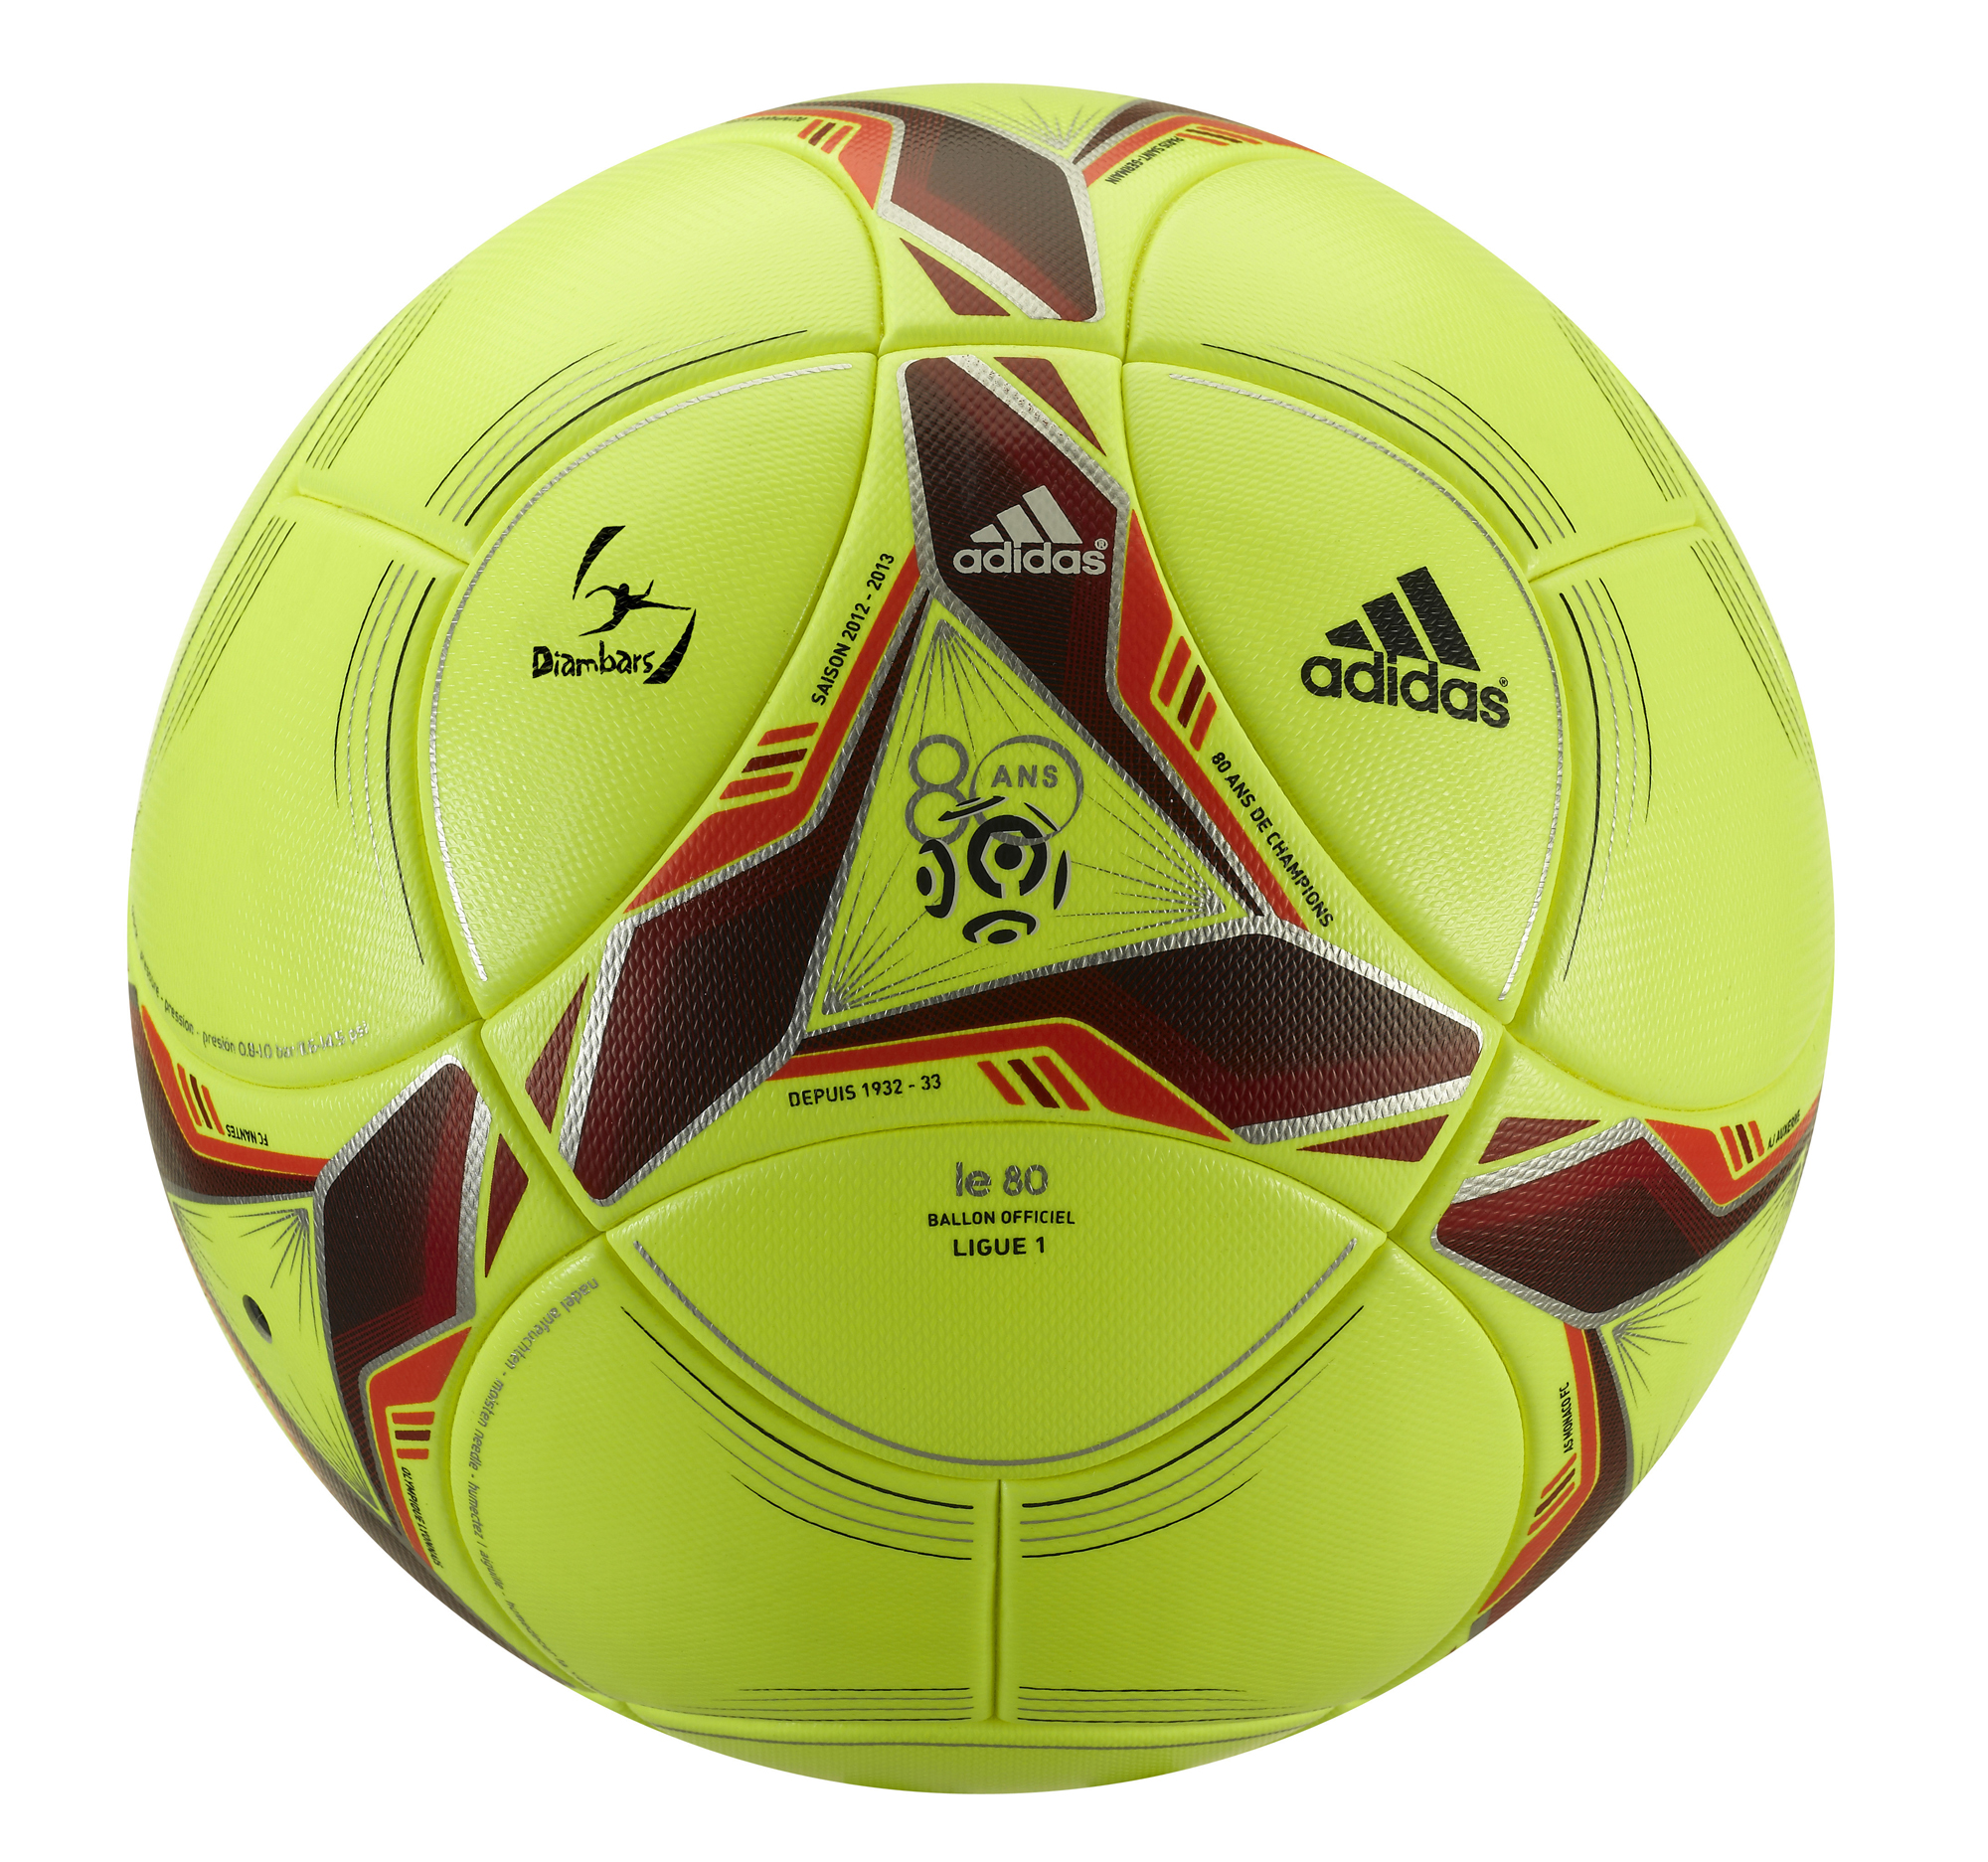 adidas, la Ligue 1 et Diambars lancent le ballon solidaire